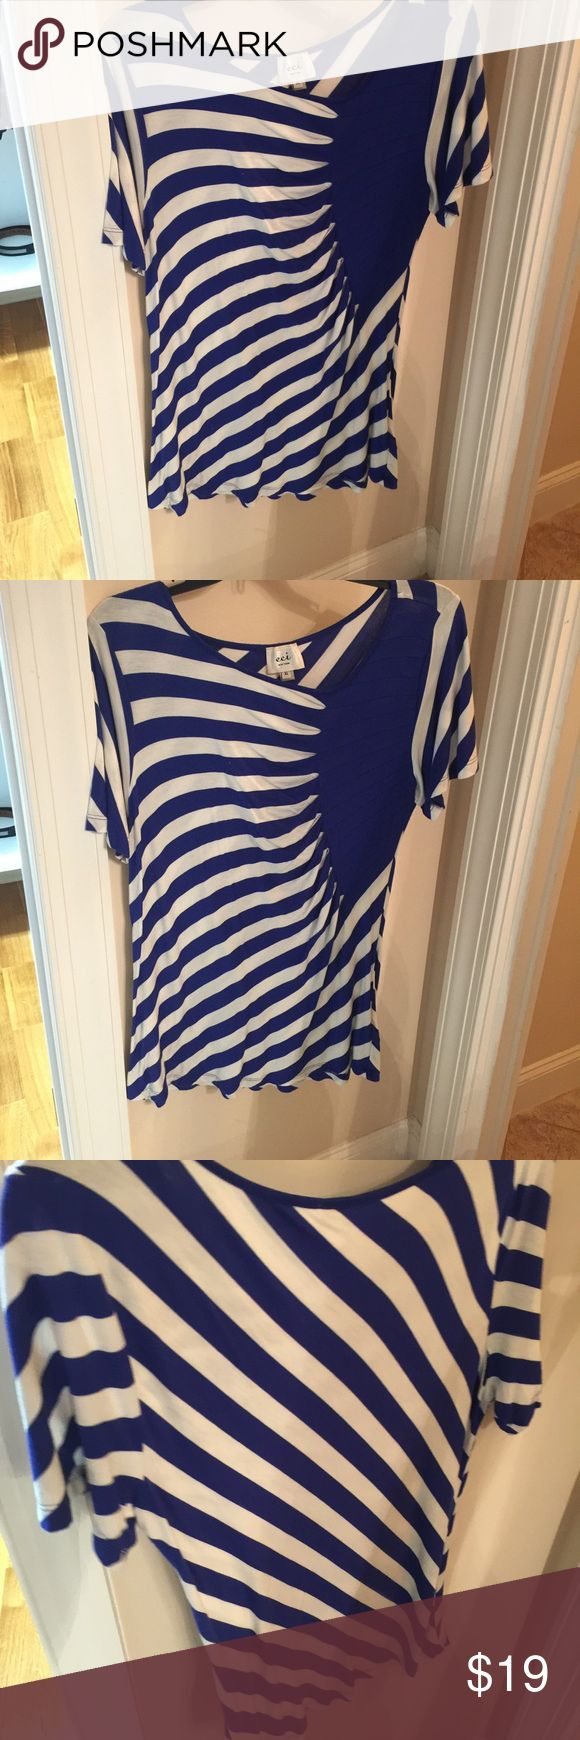 ECI short sleeve Blouse blue and white striped ECI XL Navy and white striped Blouse short sleeve Like NEW ECI Tops Blouses